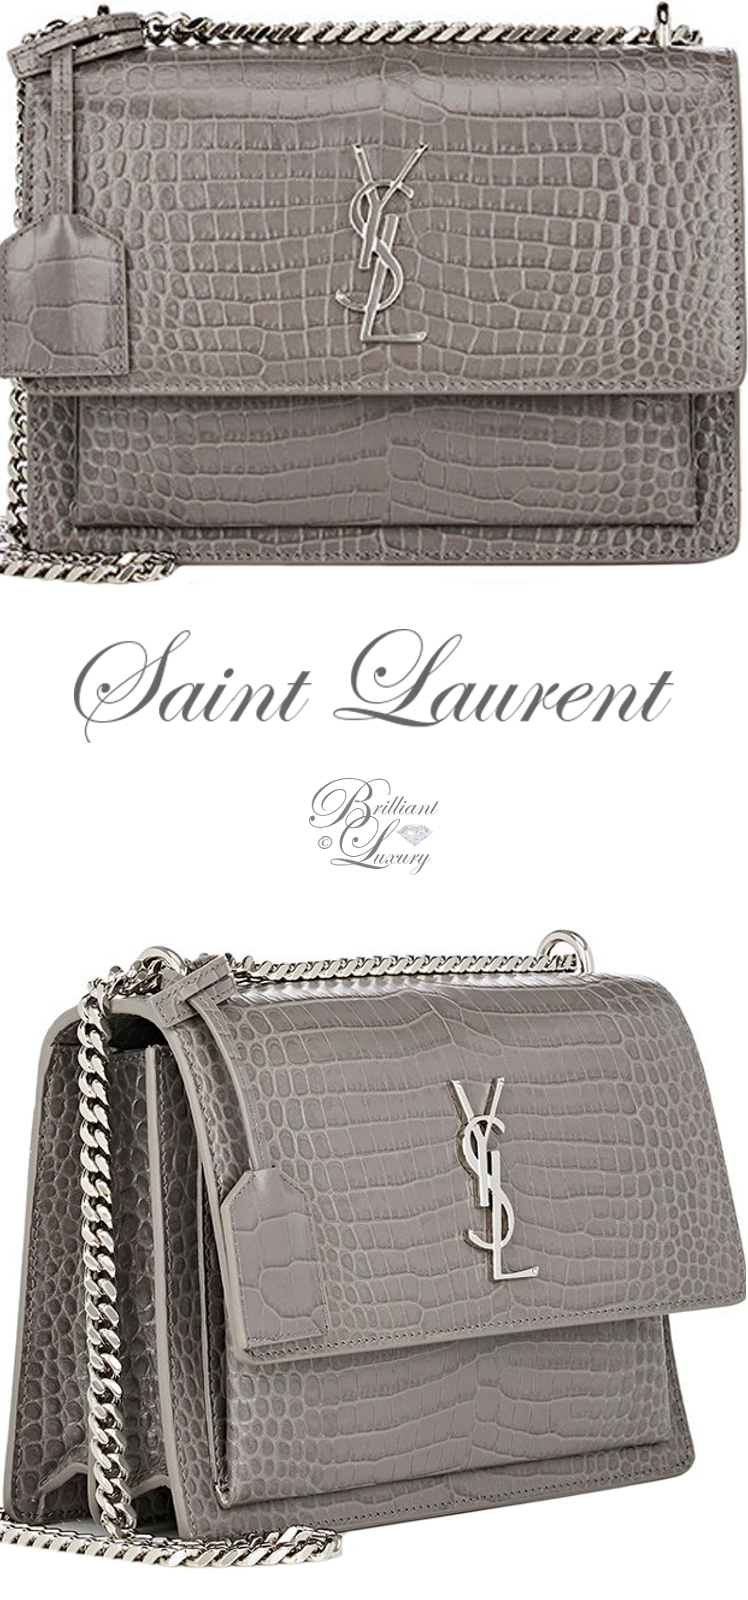 Brilliant Luxury ♦ Saint Laurent Monogram Sunset Medium Shoulder Bag